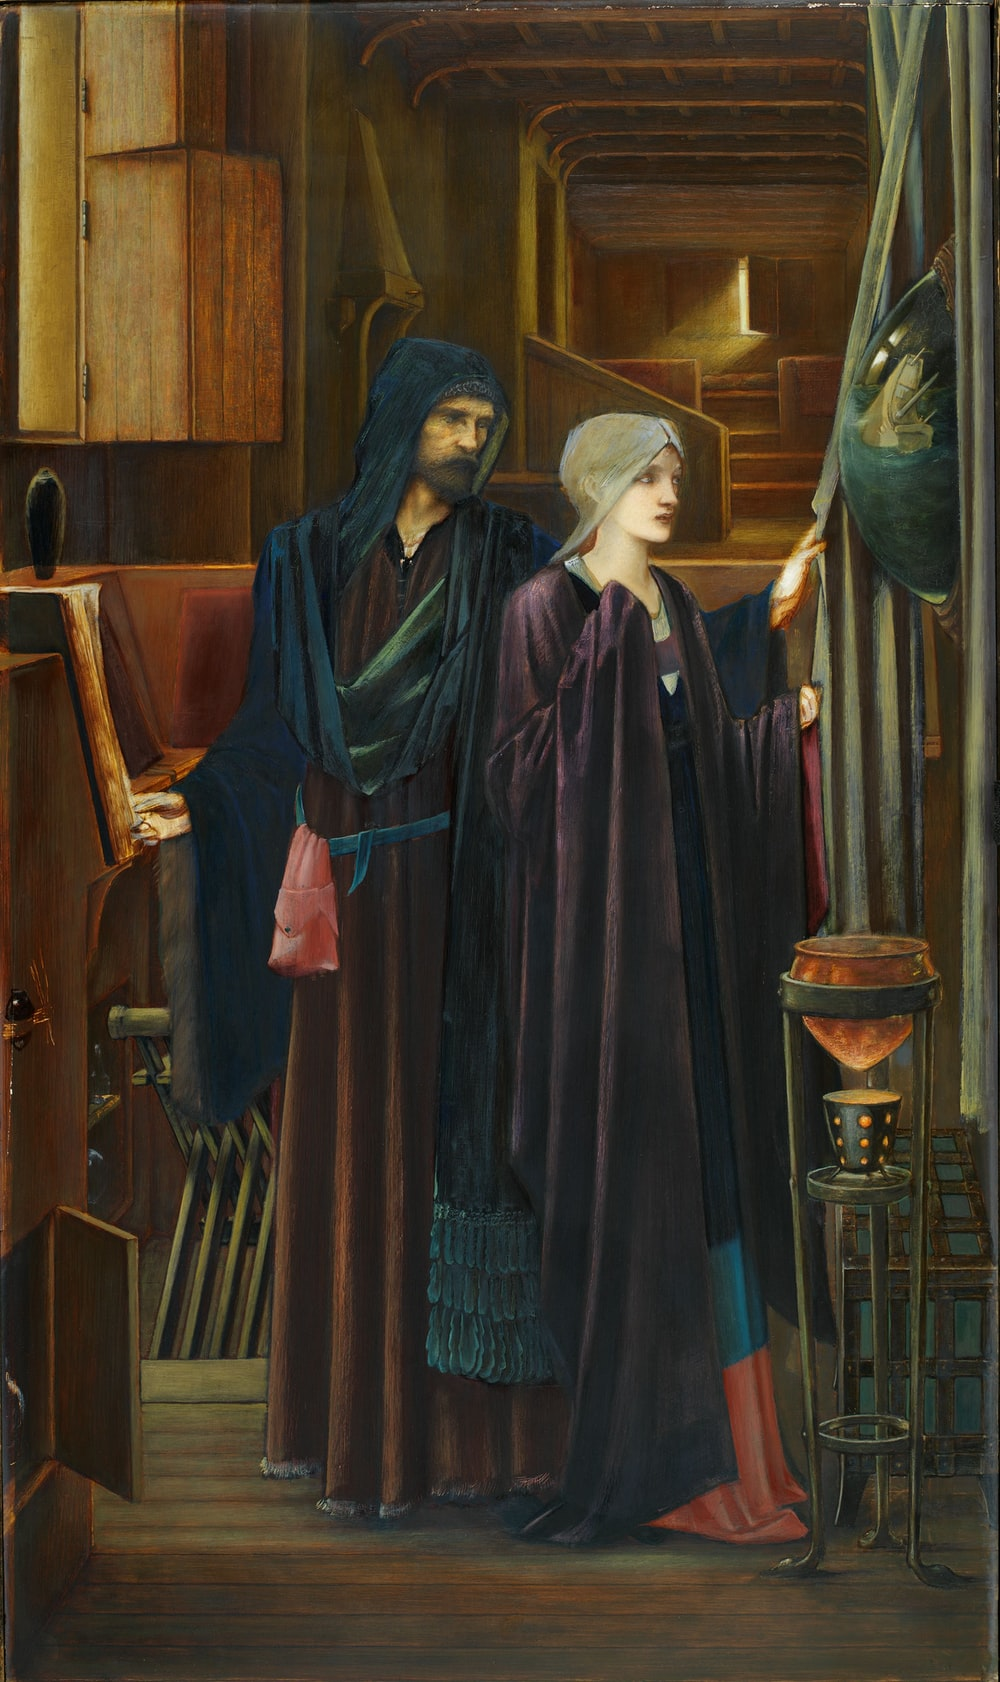 man standing behind woman painting